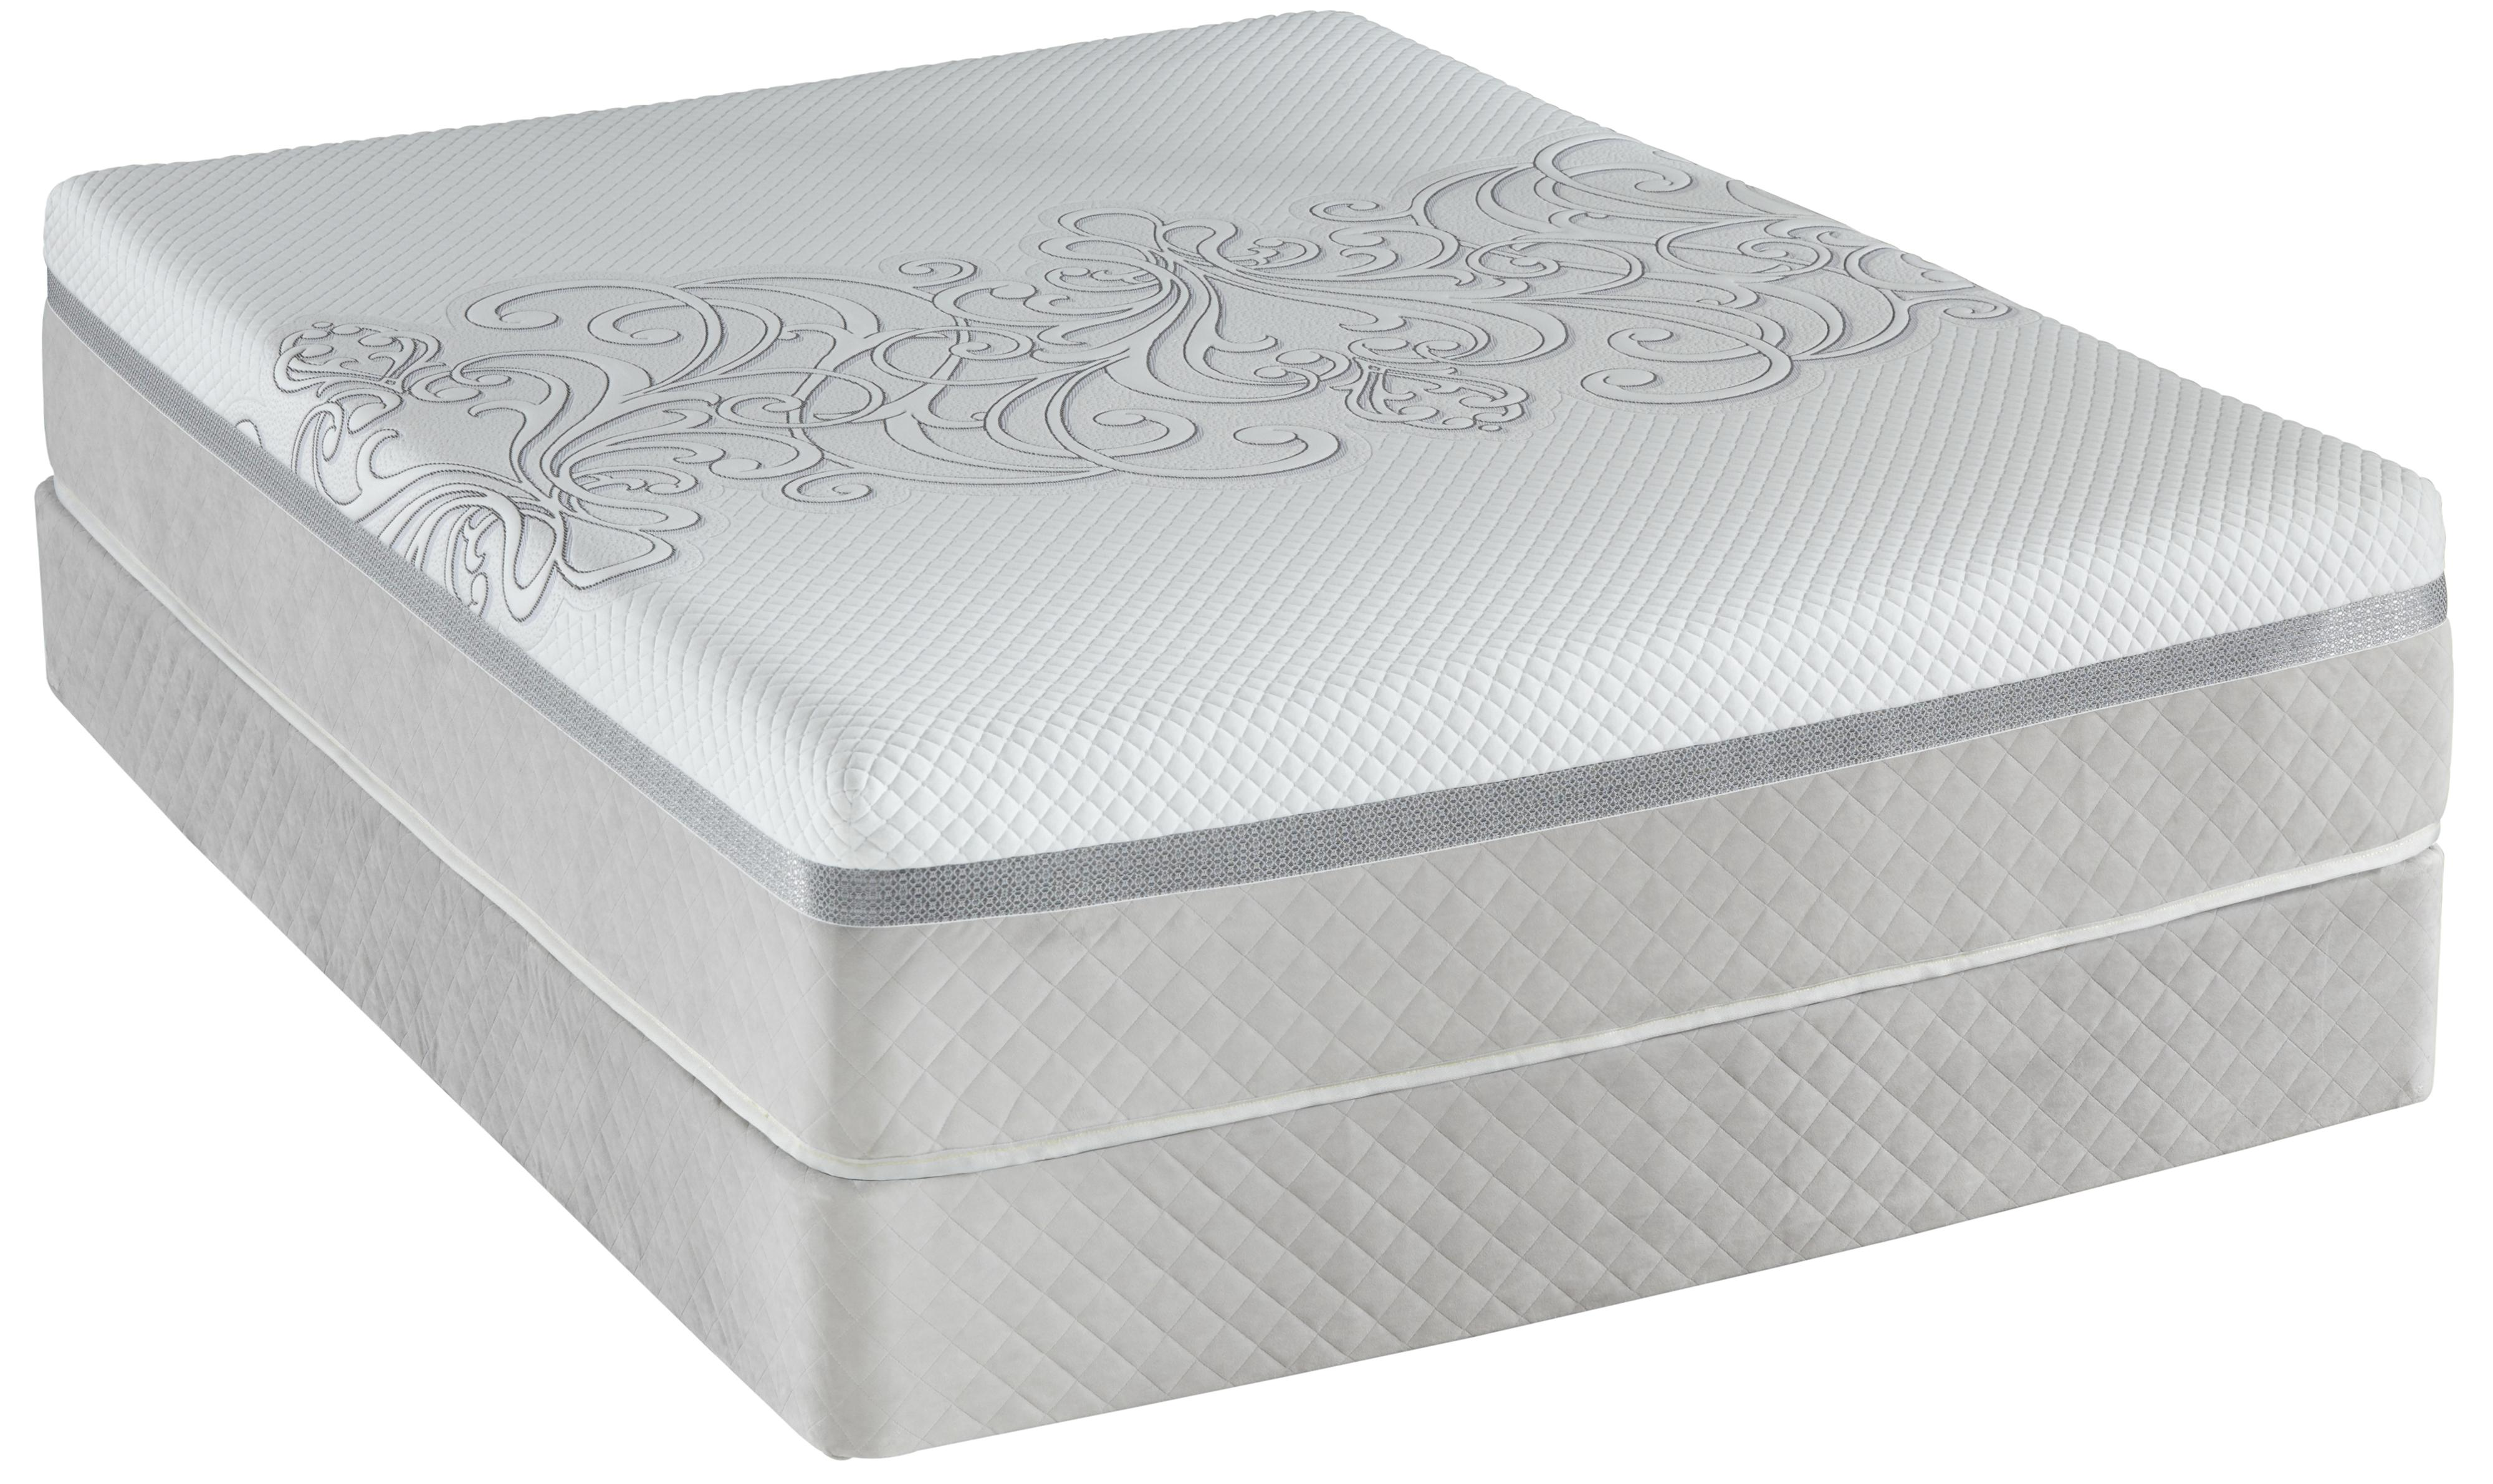 Posturepedic Hybrid Encourage H4 Twin Plush Top Mattress And Foundation By Sealy